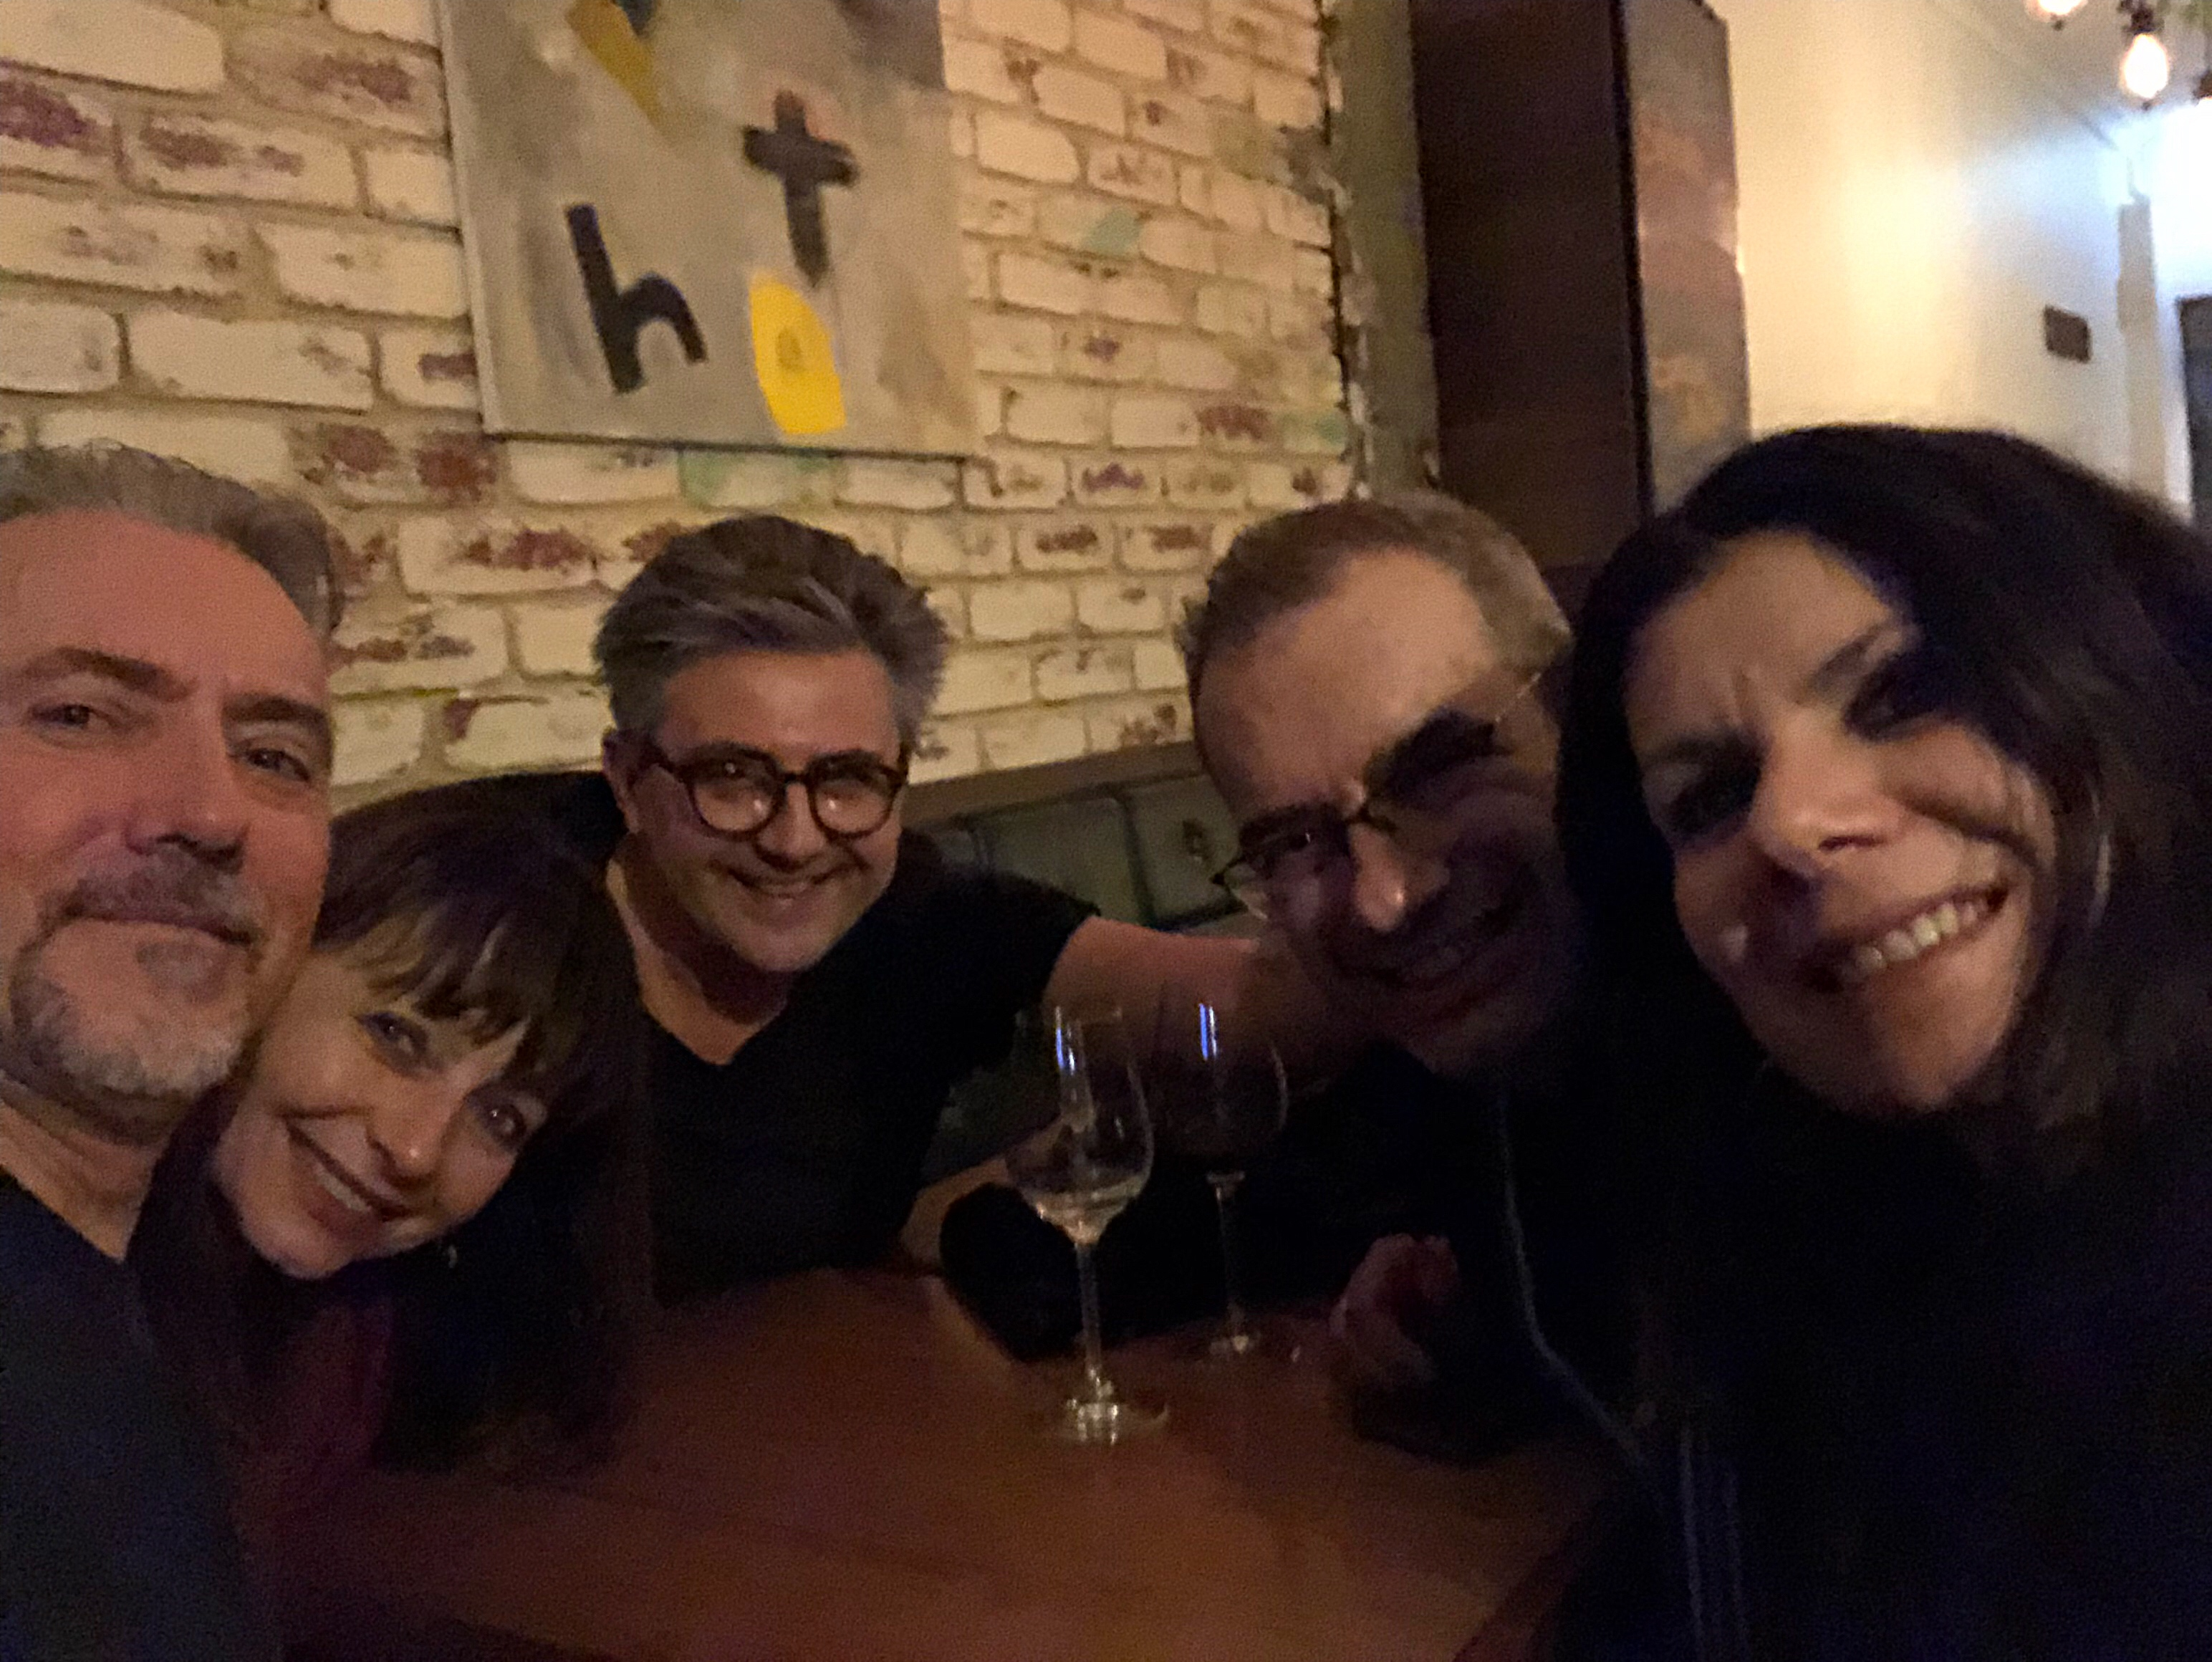 After show catch up at Chatos